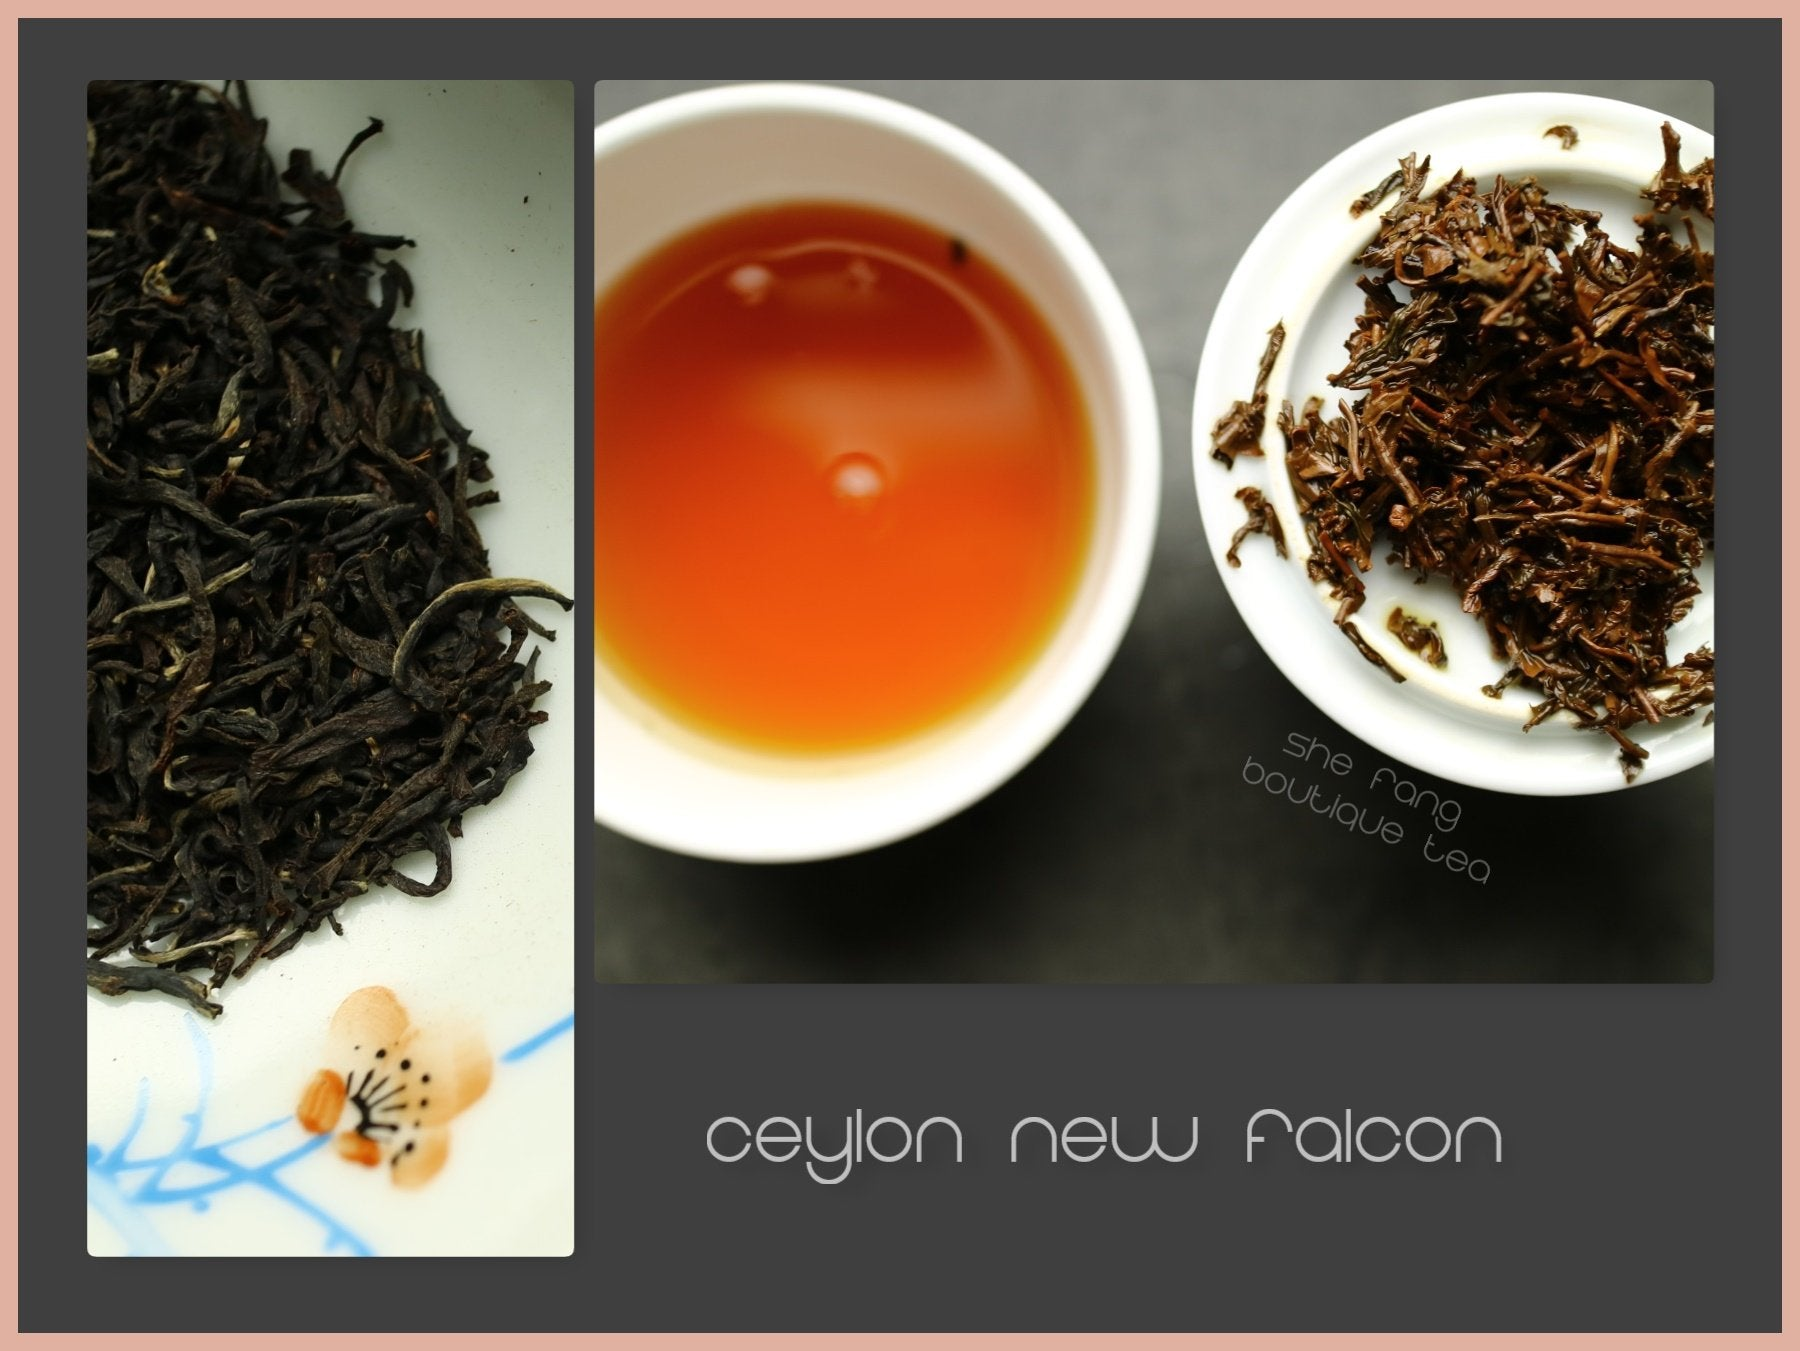 Tea sourcing - batch 235 - Ceylon New Falcon exclusive